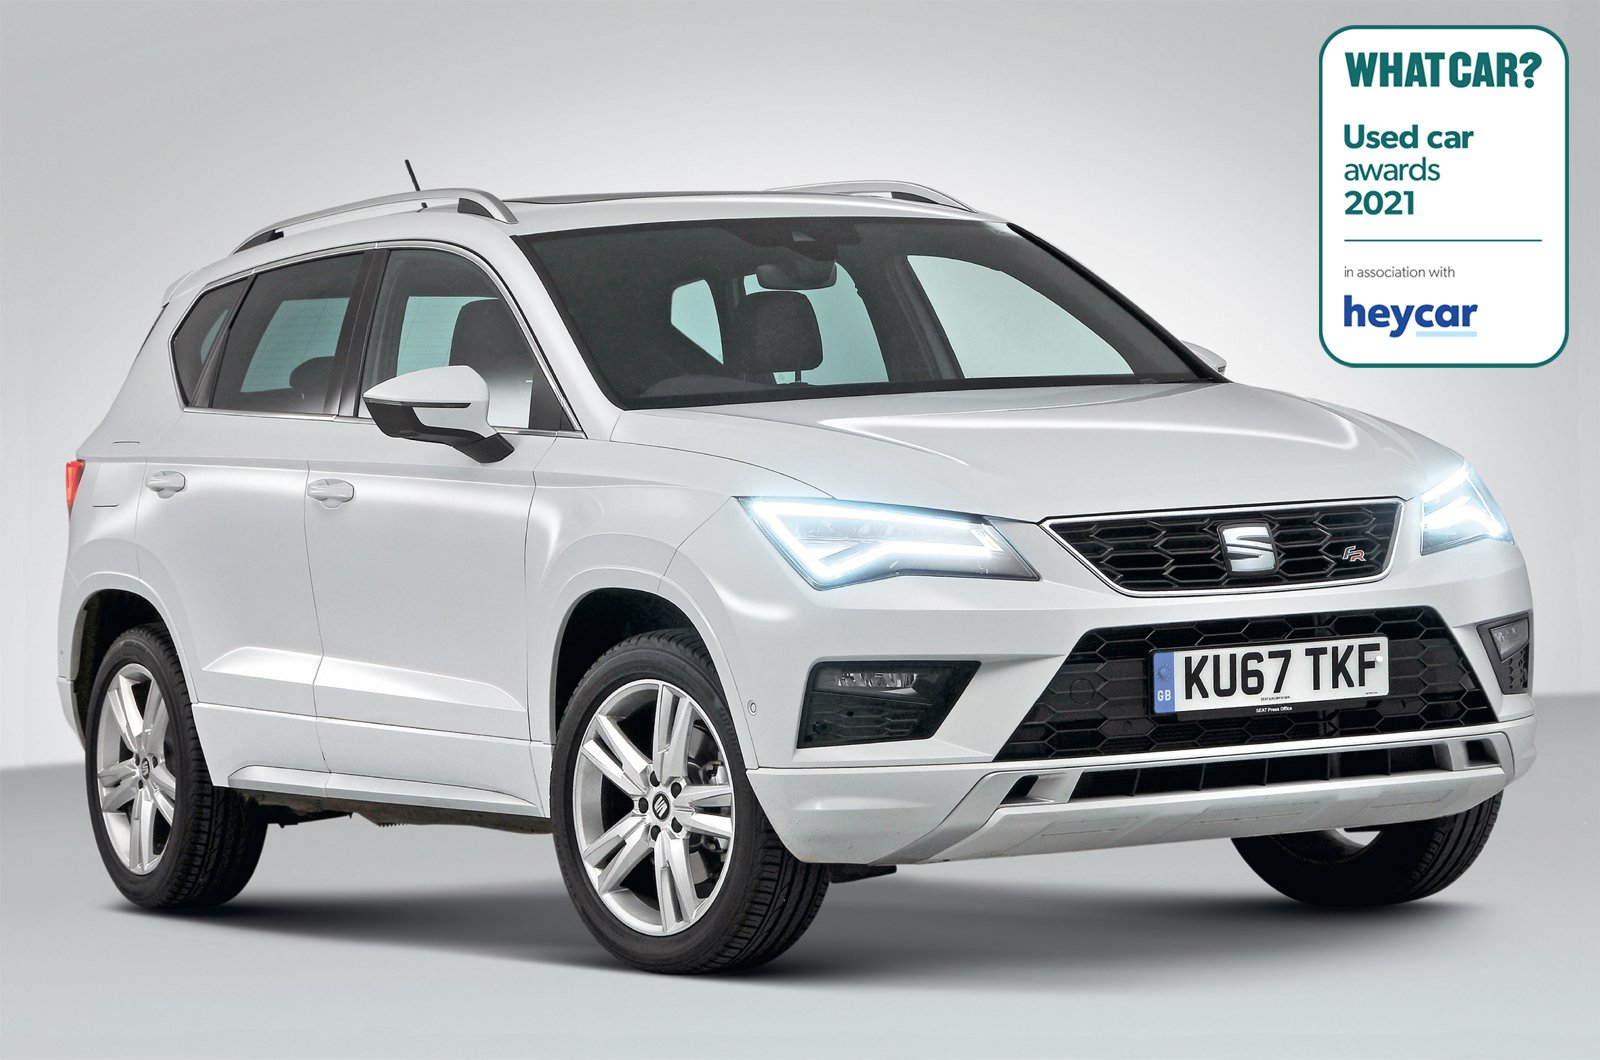 Used Car Awards 2021 - Seat Ateca